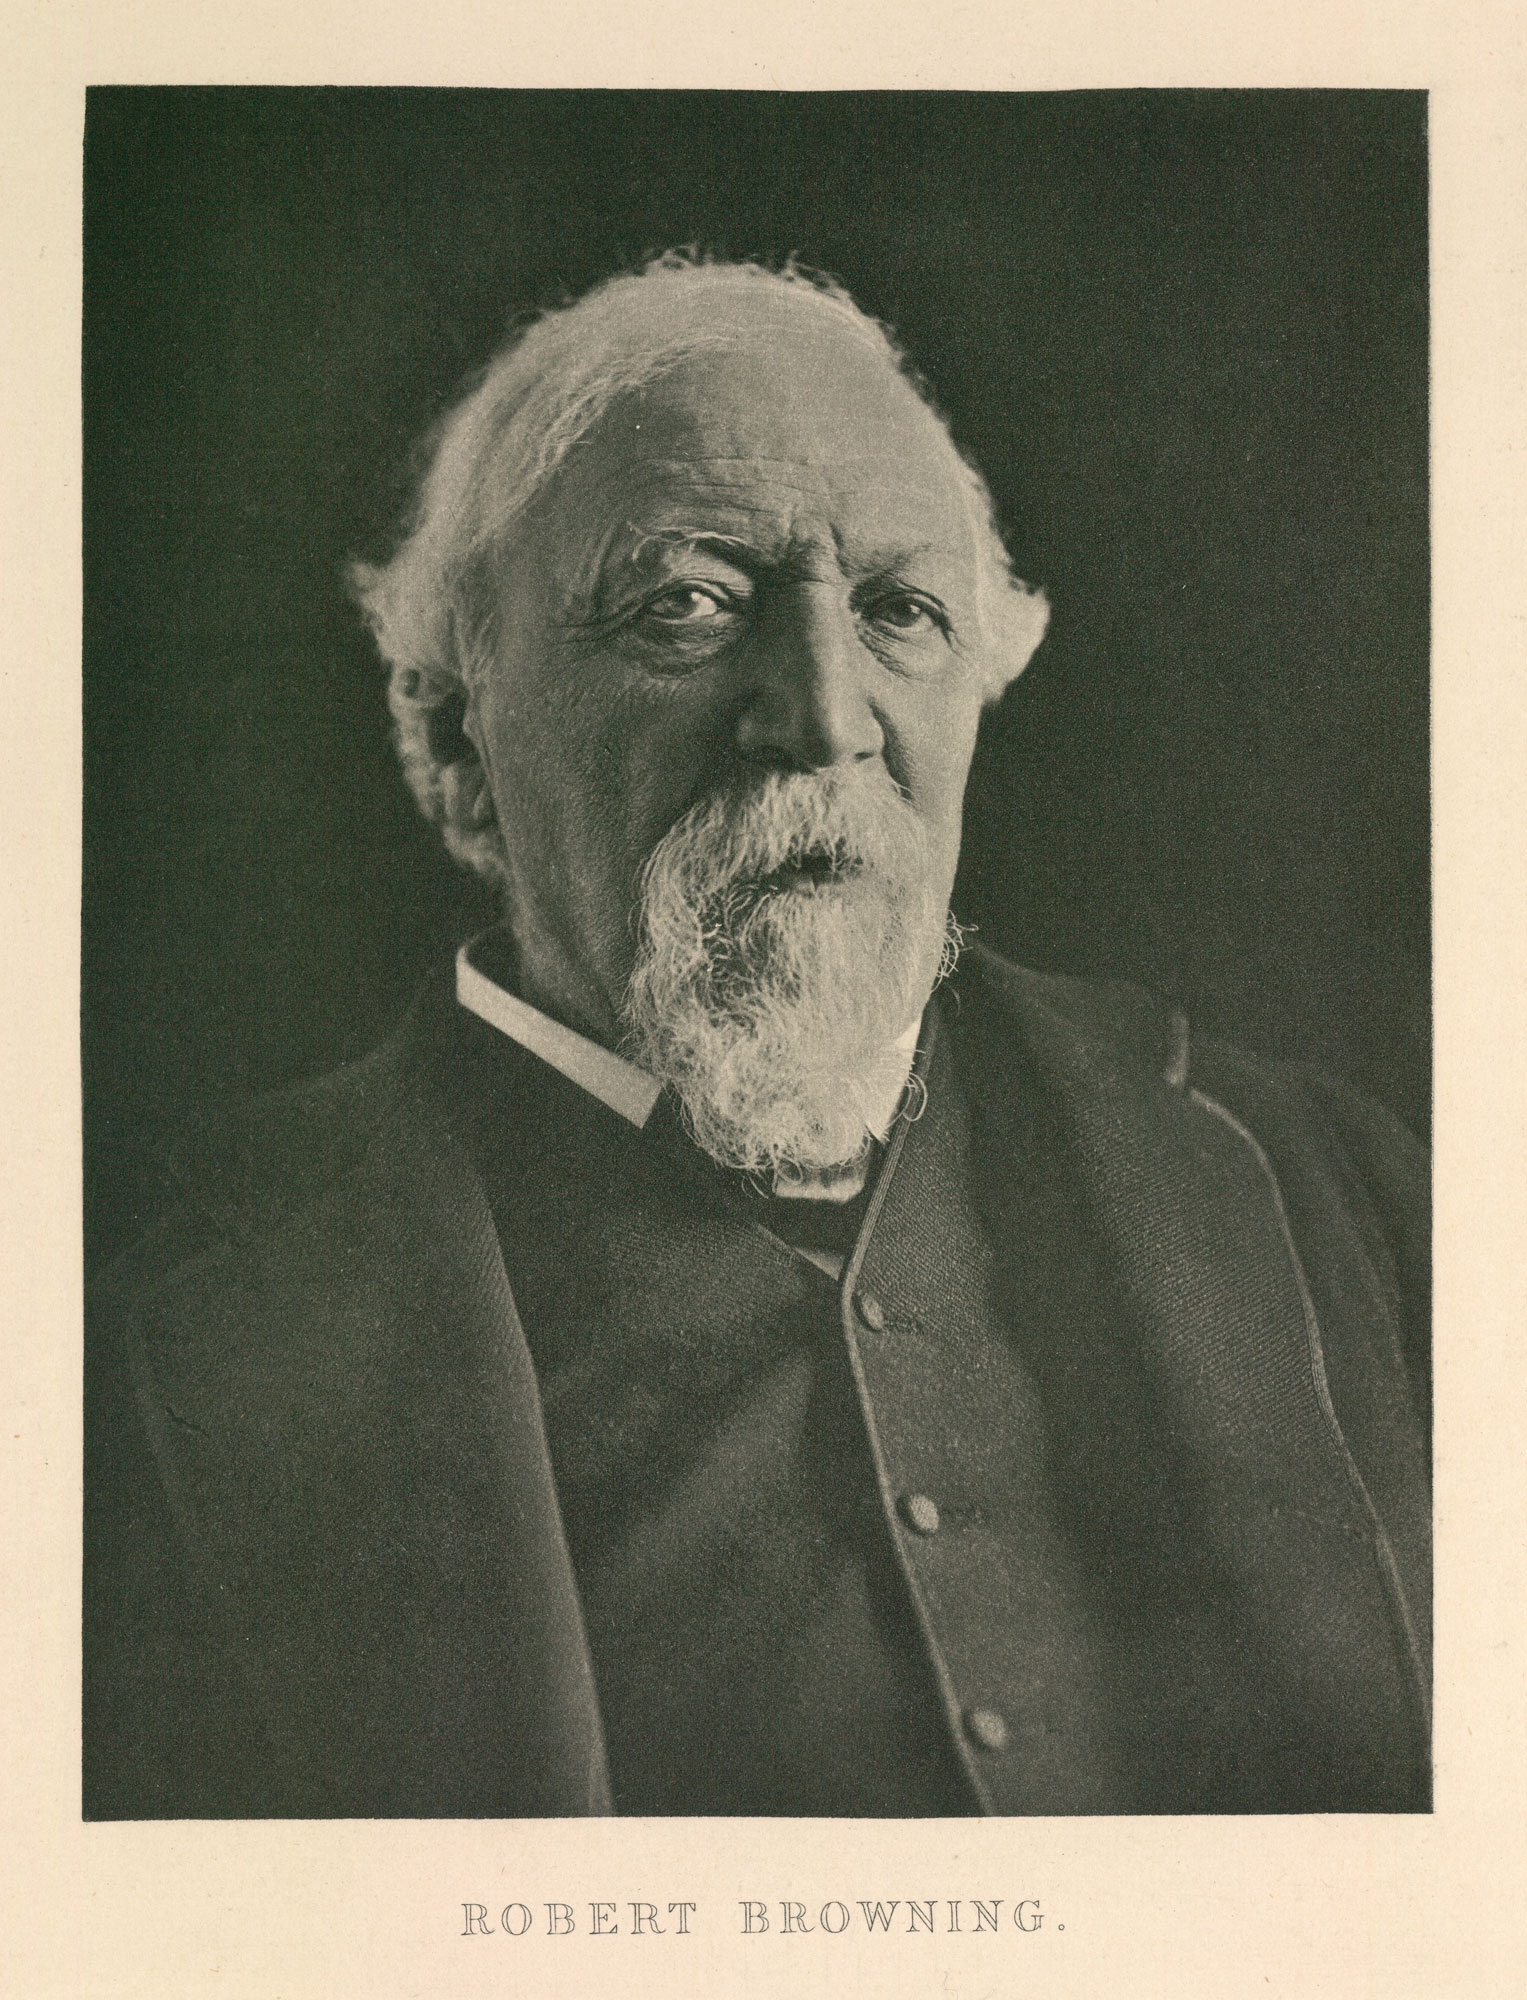 Photograph portrait of Robert Browning by F W H Myers [page: no. 7 ['Robert Browning']]